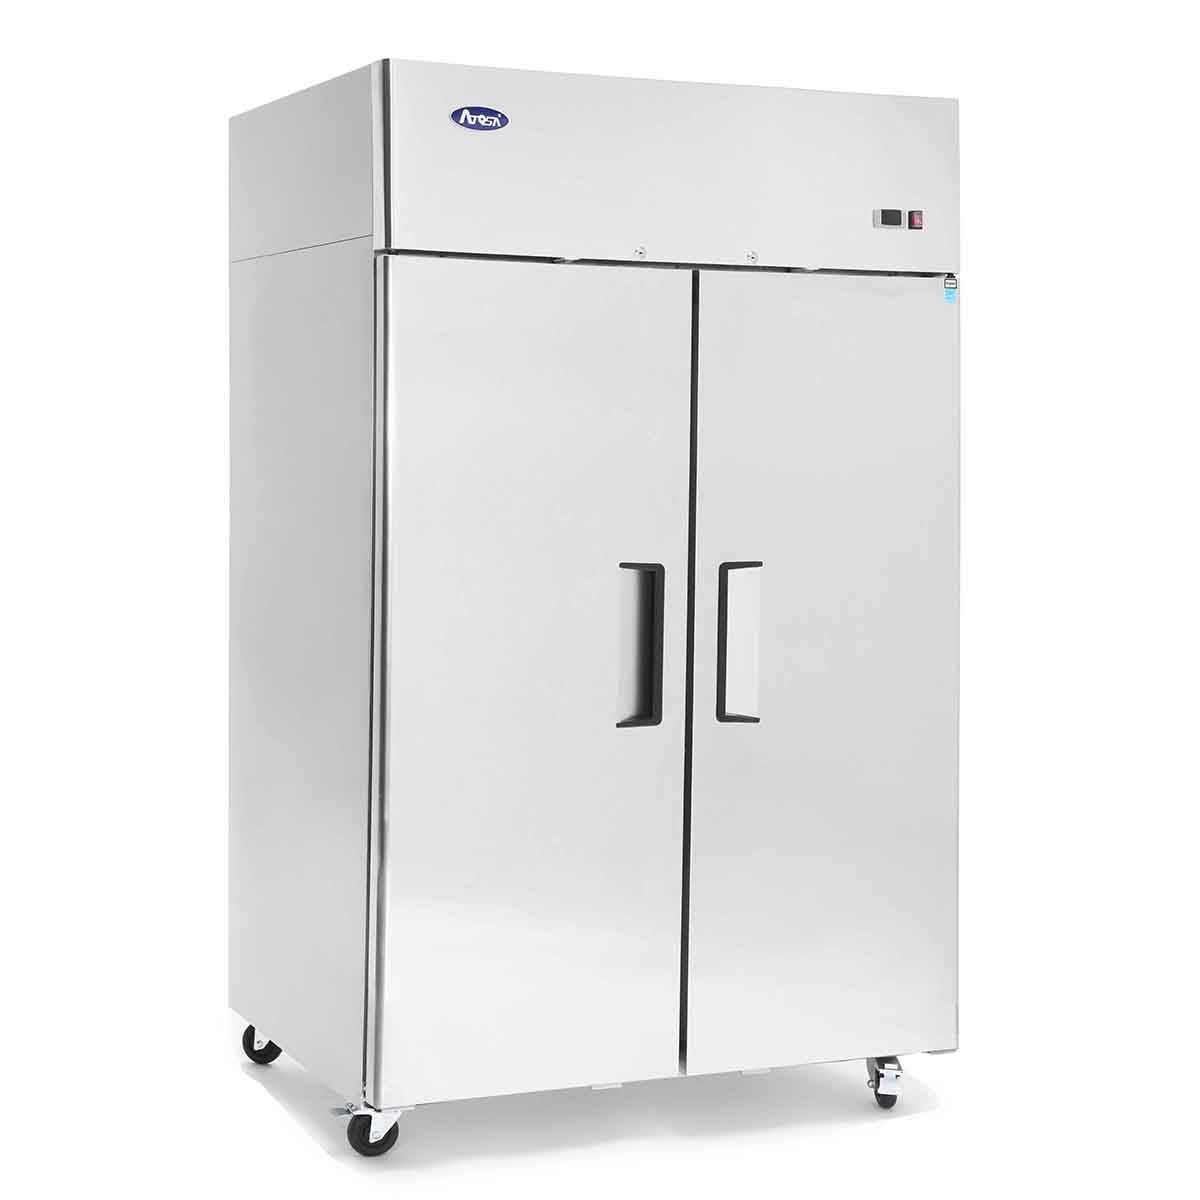 Atosa MBF8005 Top Mount Two Door Refrigerator